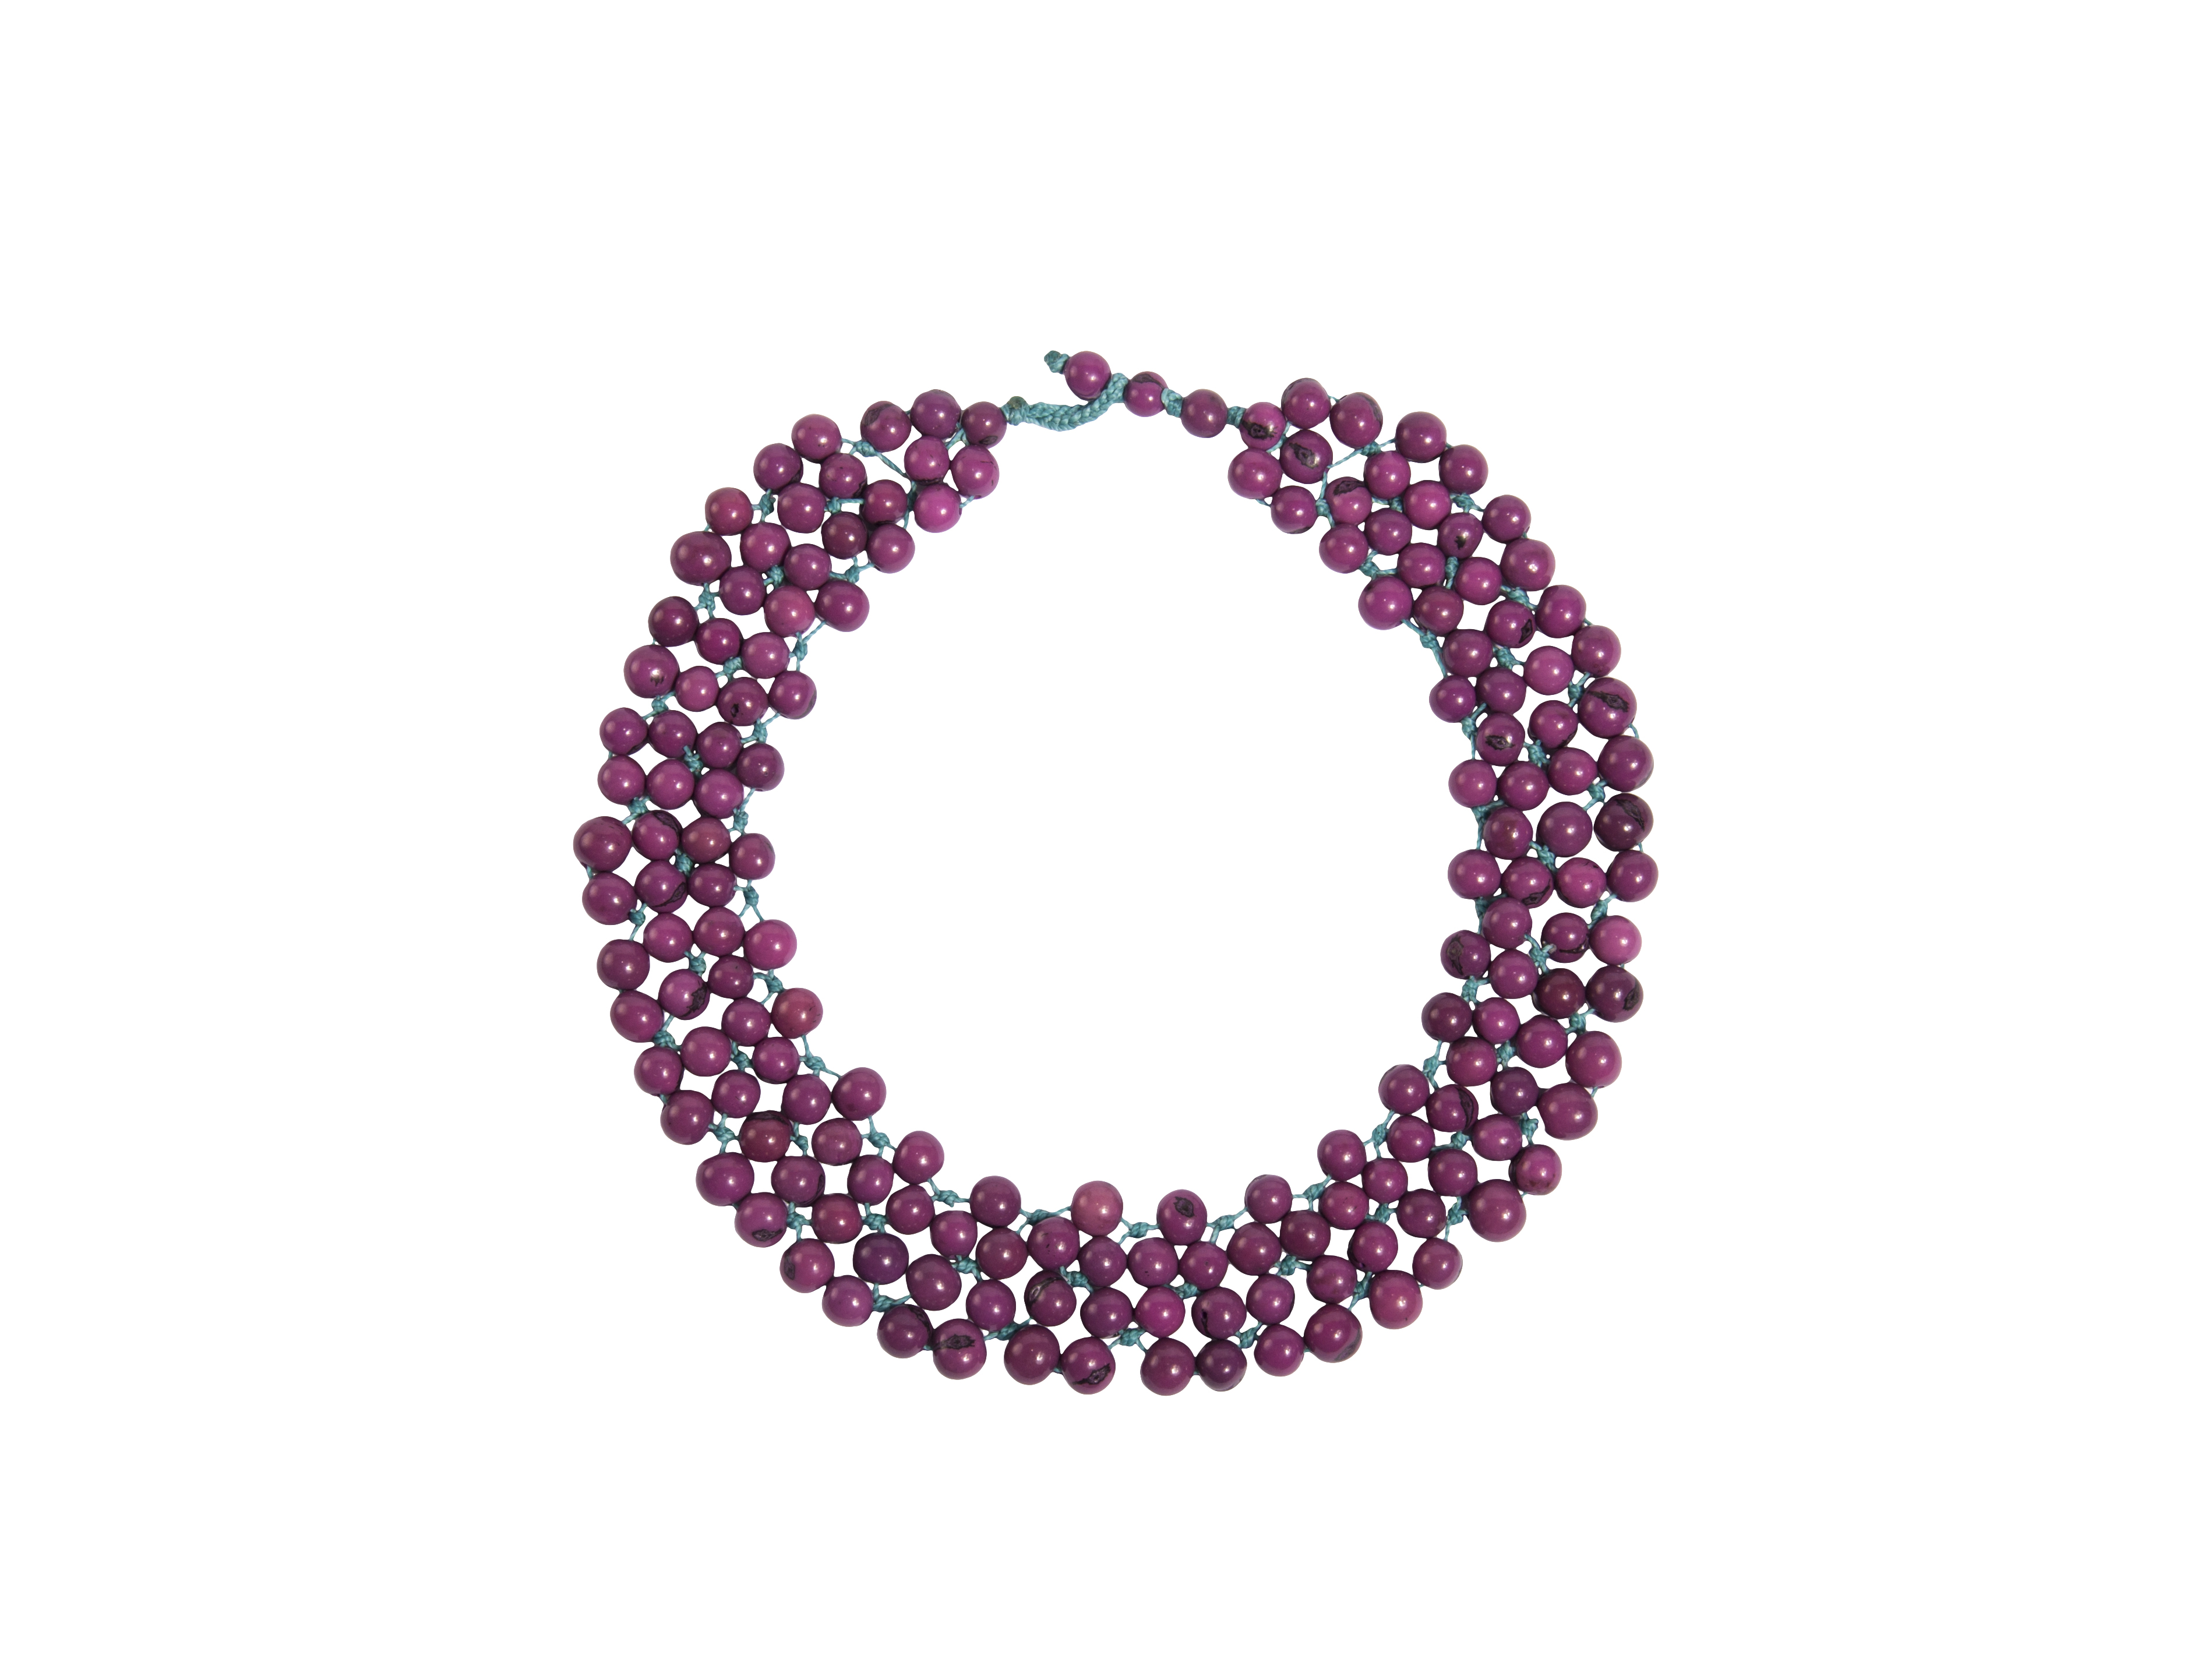 AC Marea Collar NKL berry How the Andean Collection has Empowered Artisans in Ecuador to Rise Above Poverty